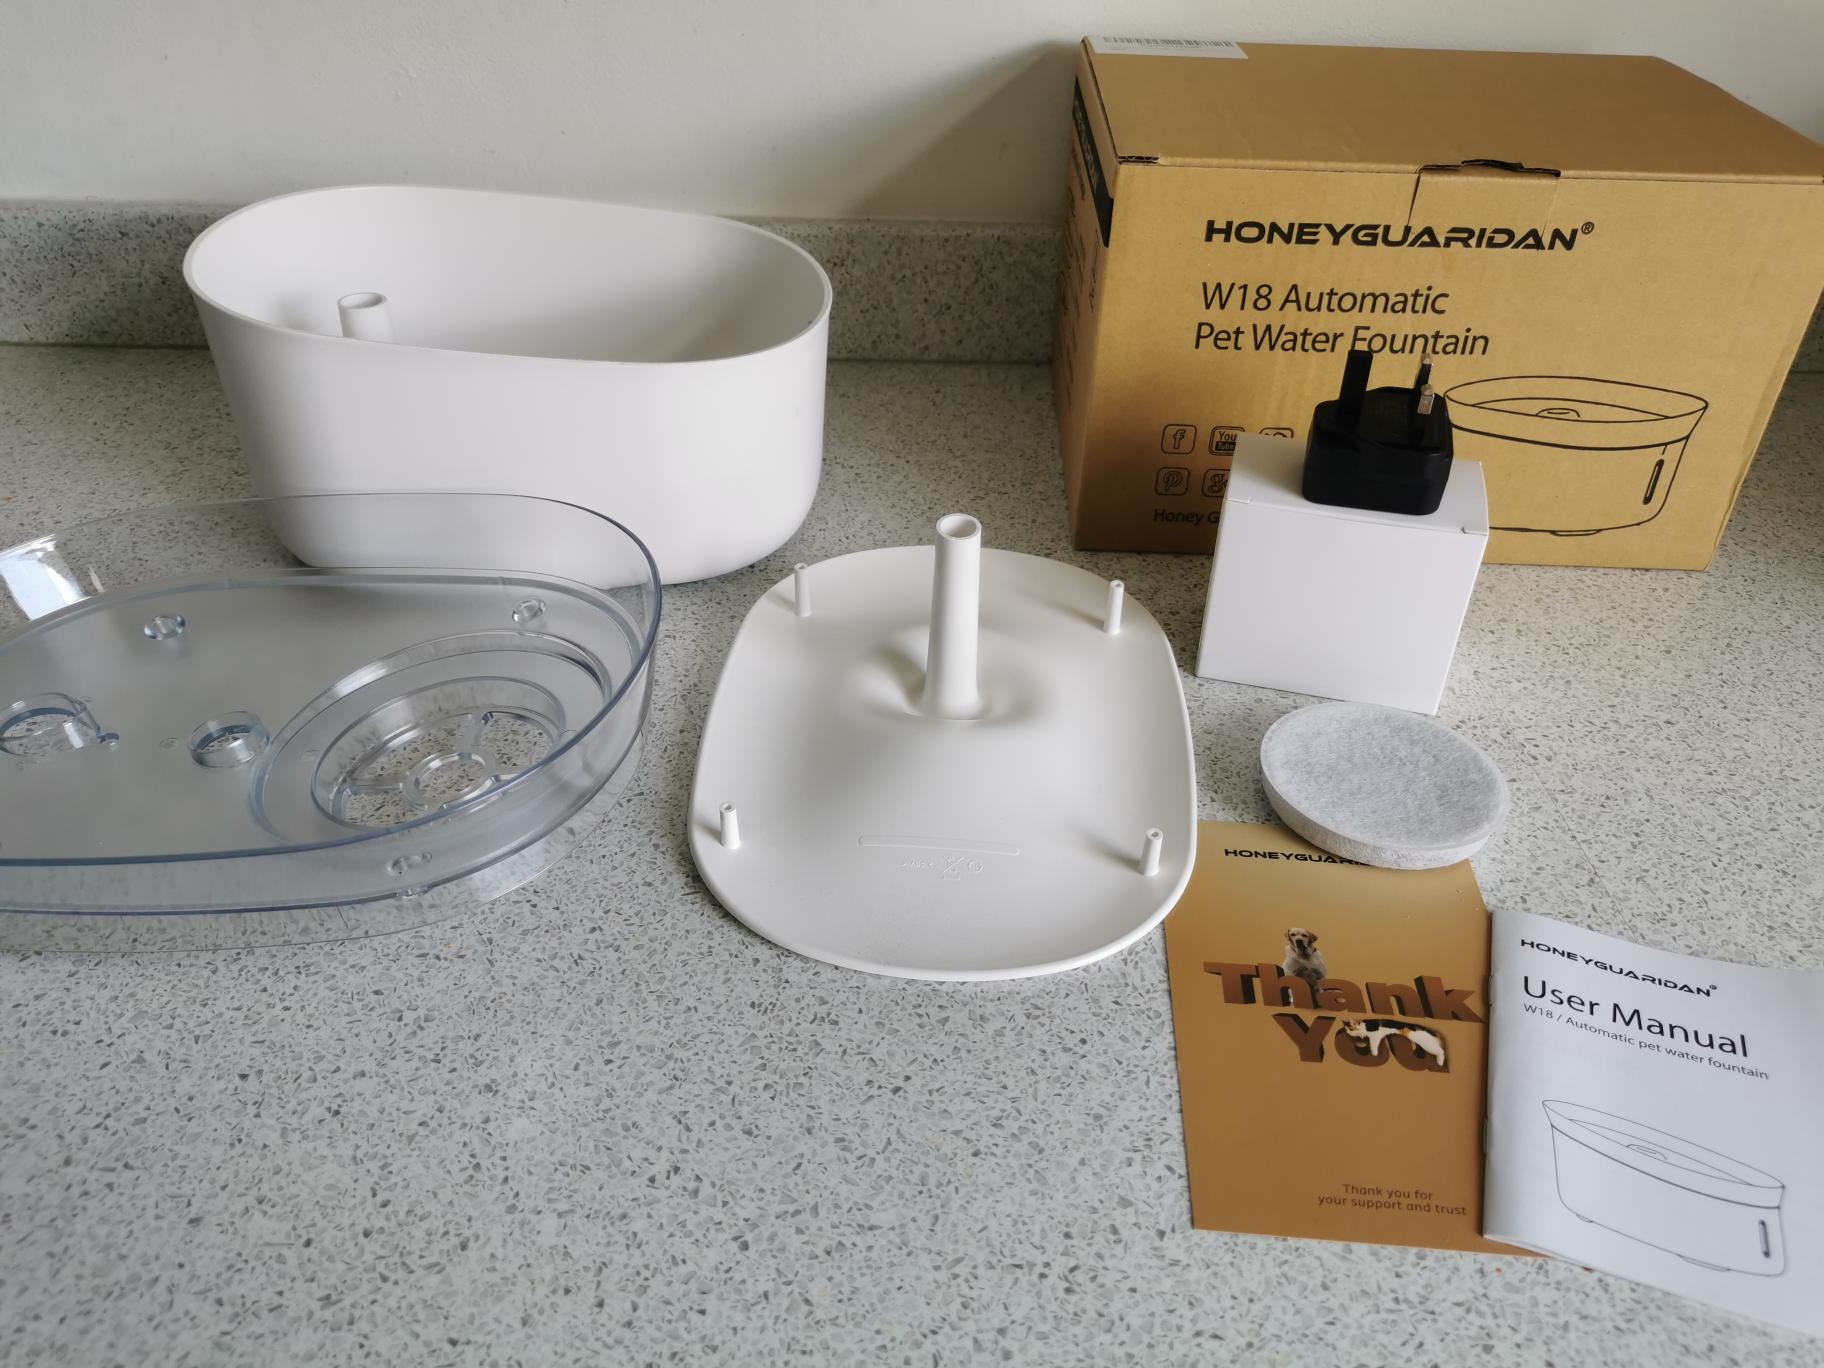 Honey Guardian Automatic Pet Water Fountain review 1